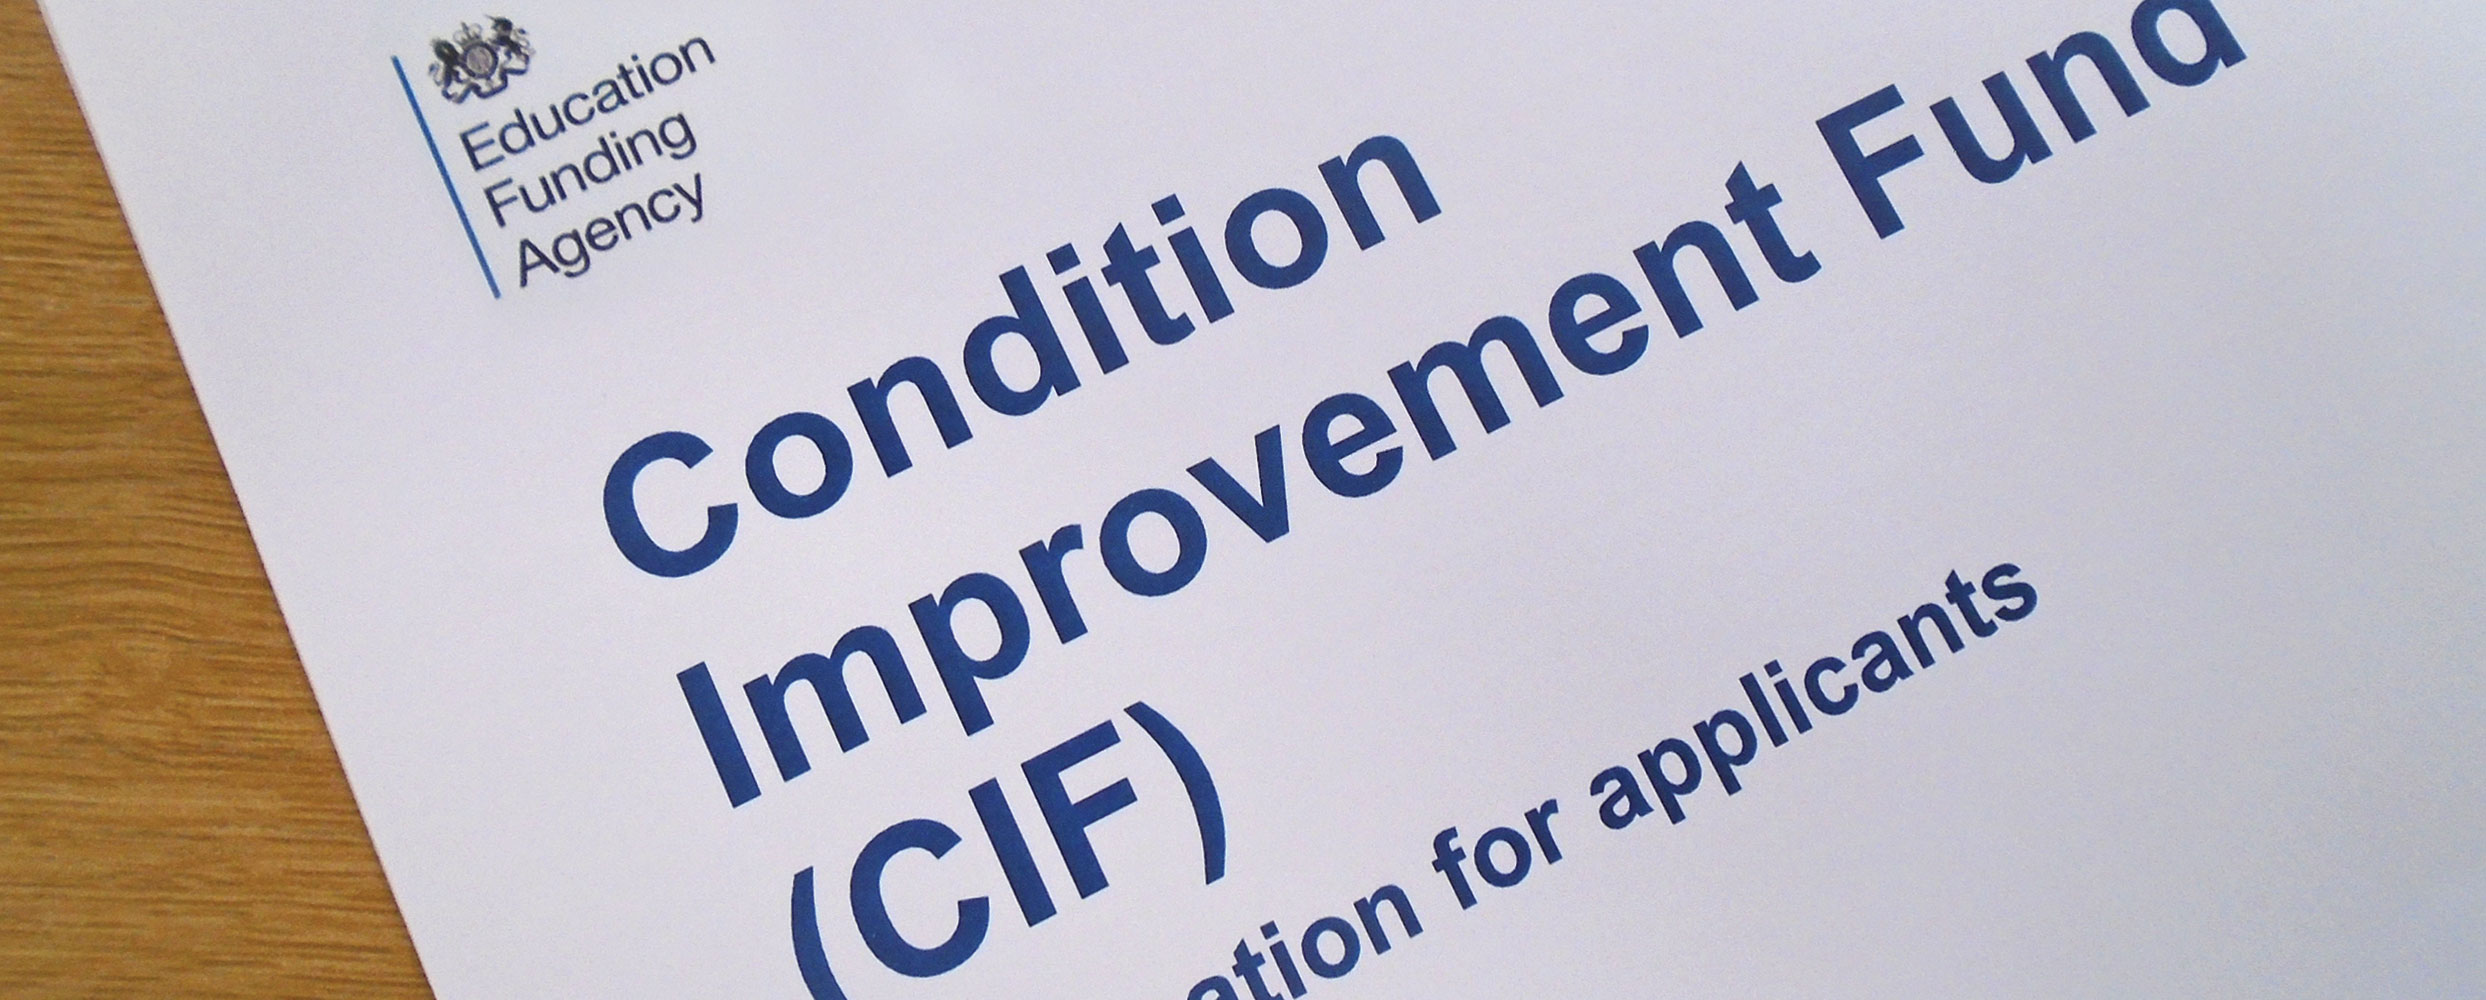 Grant Funding Condition Improvement Fund (CIF)